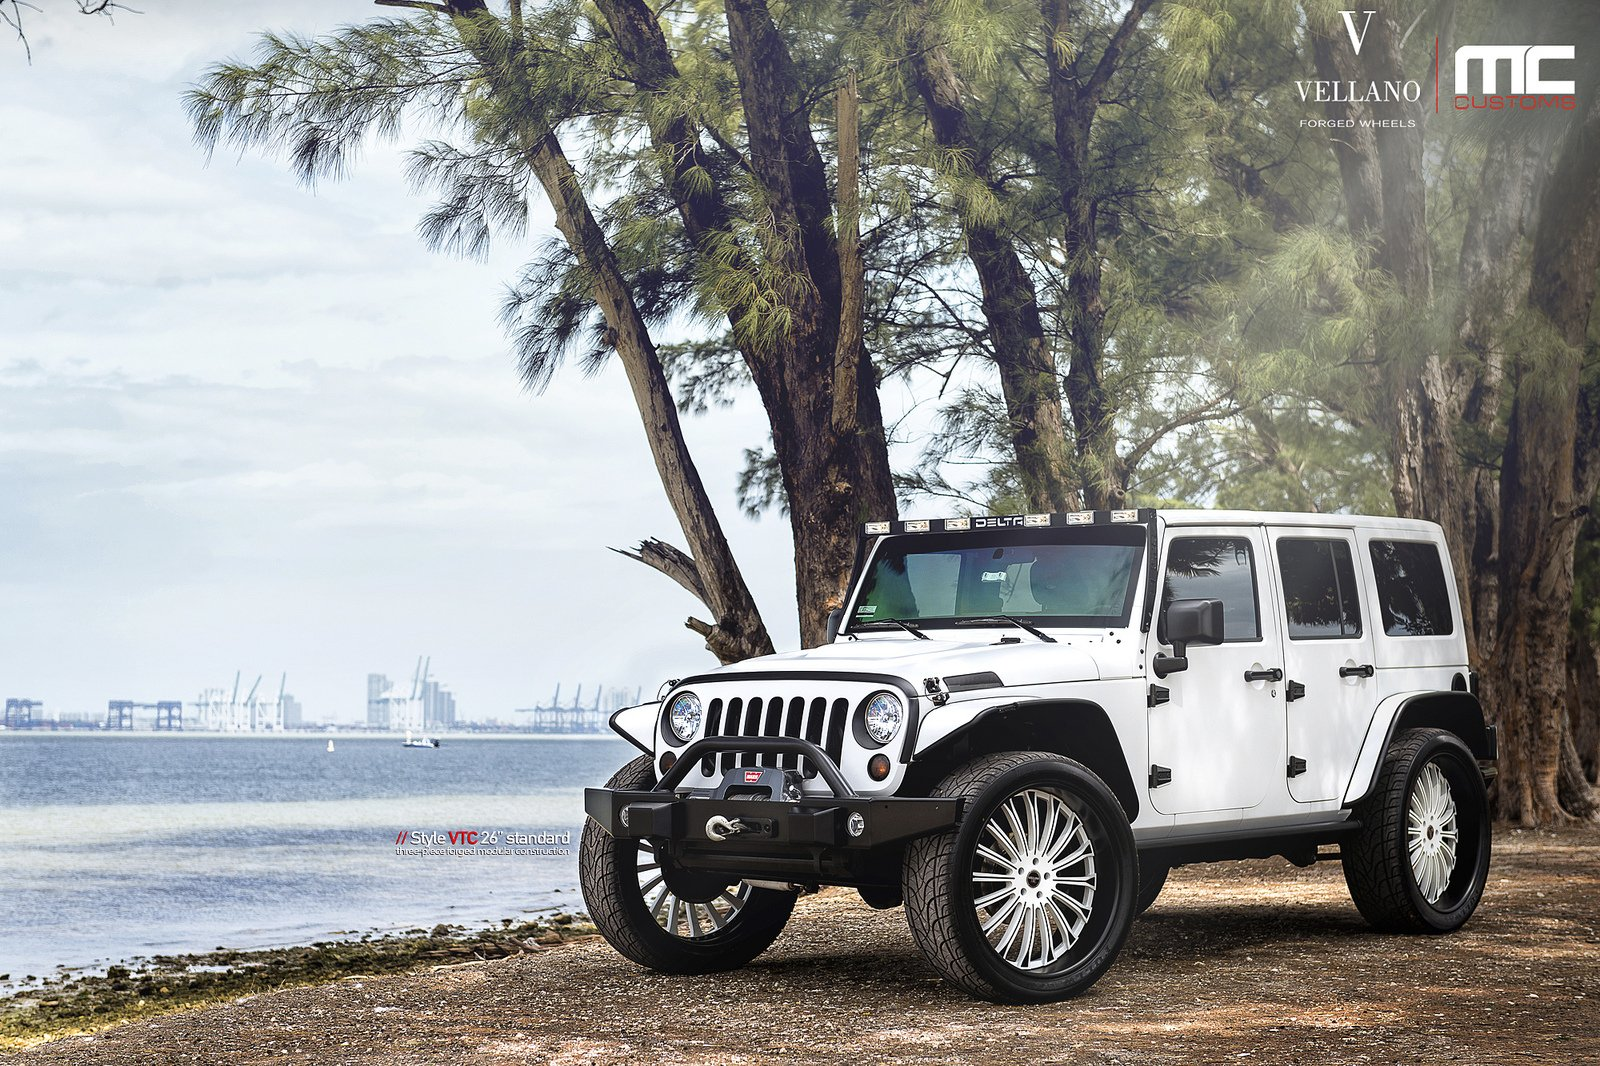 cars jeep tuning vellano wheels white wrangler wallpaper 1600x1066 392372 wallpaperup. Black Bedroom Furniture Sets. Home Design Ideas